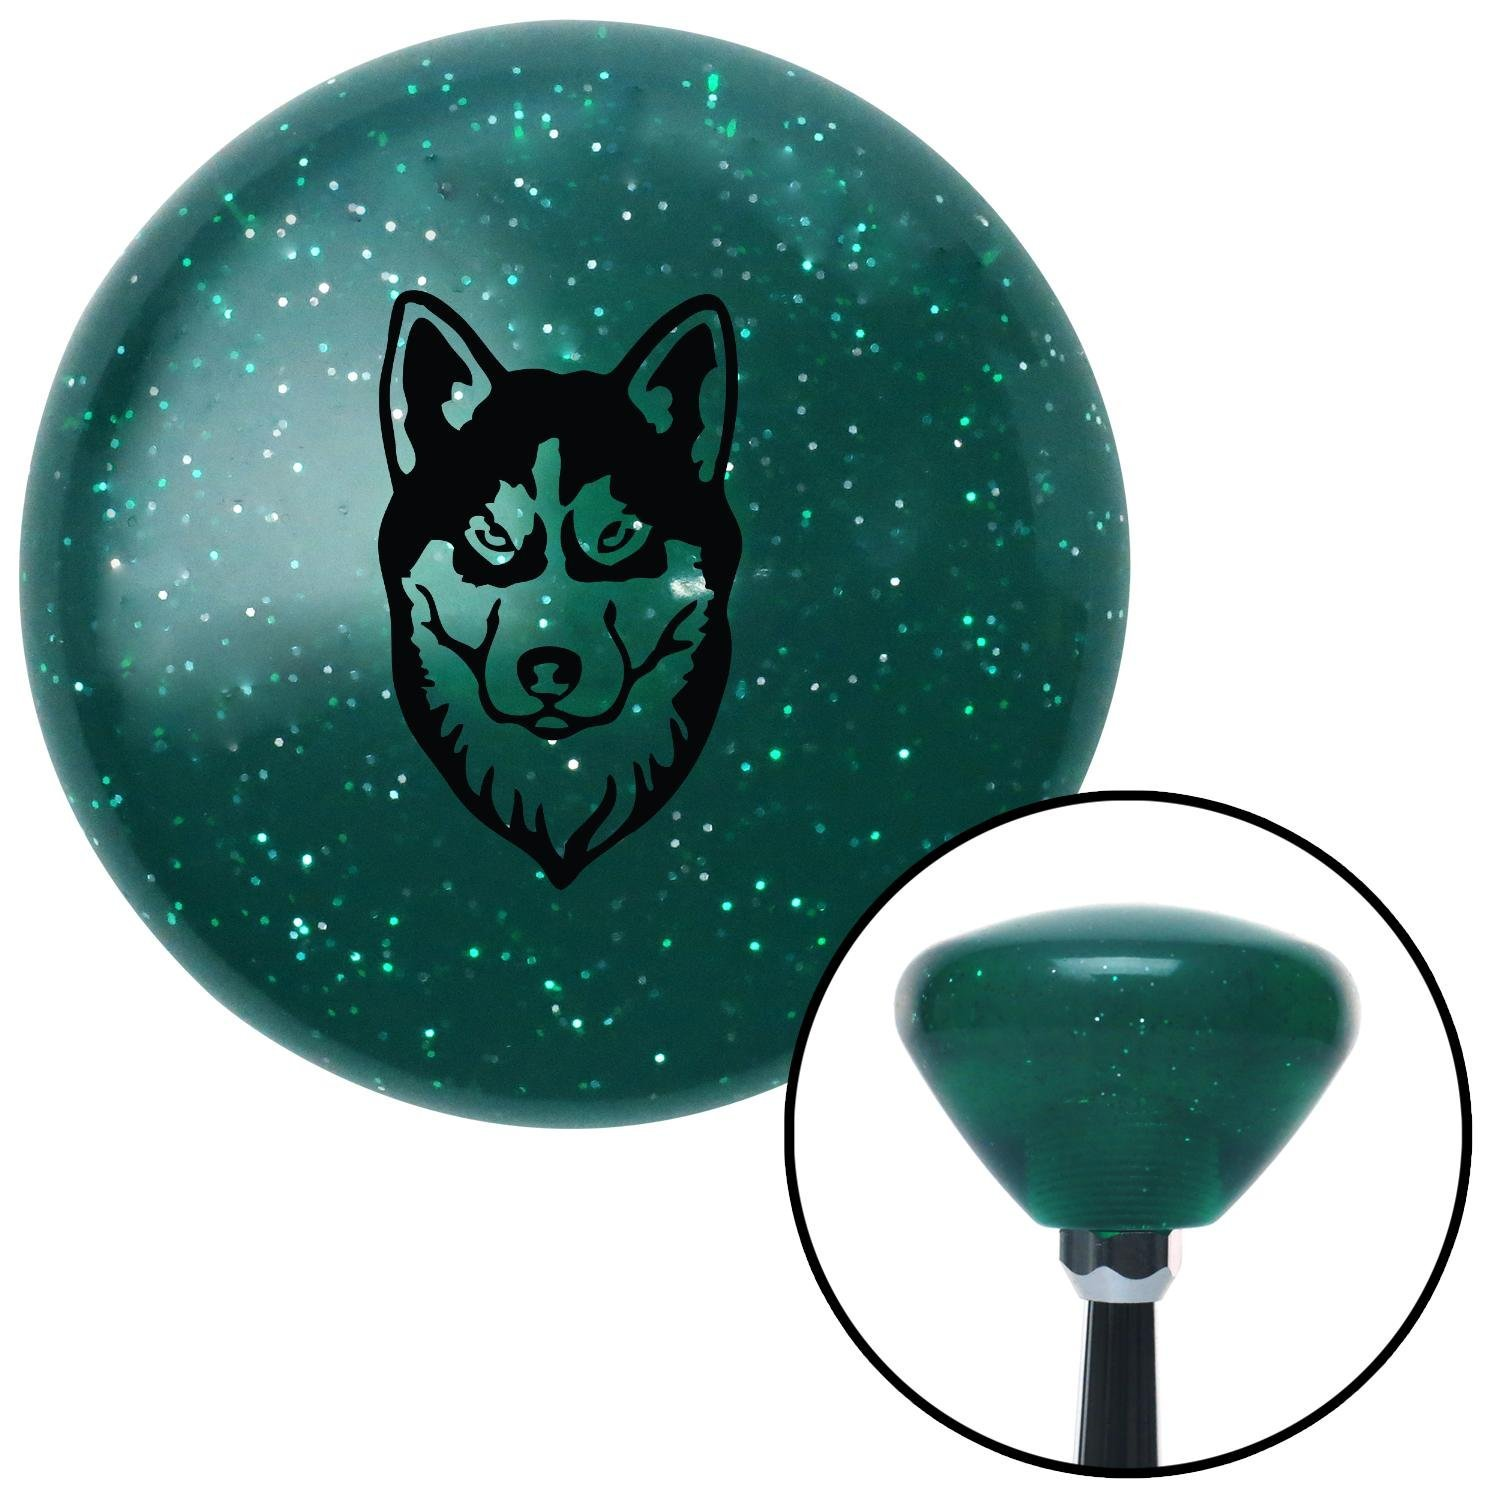 American Shifter 207755 Green Retro Metal Flake Shift Knob with M16 x 1.5 Insert Black Husky